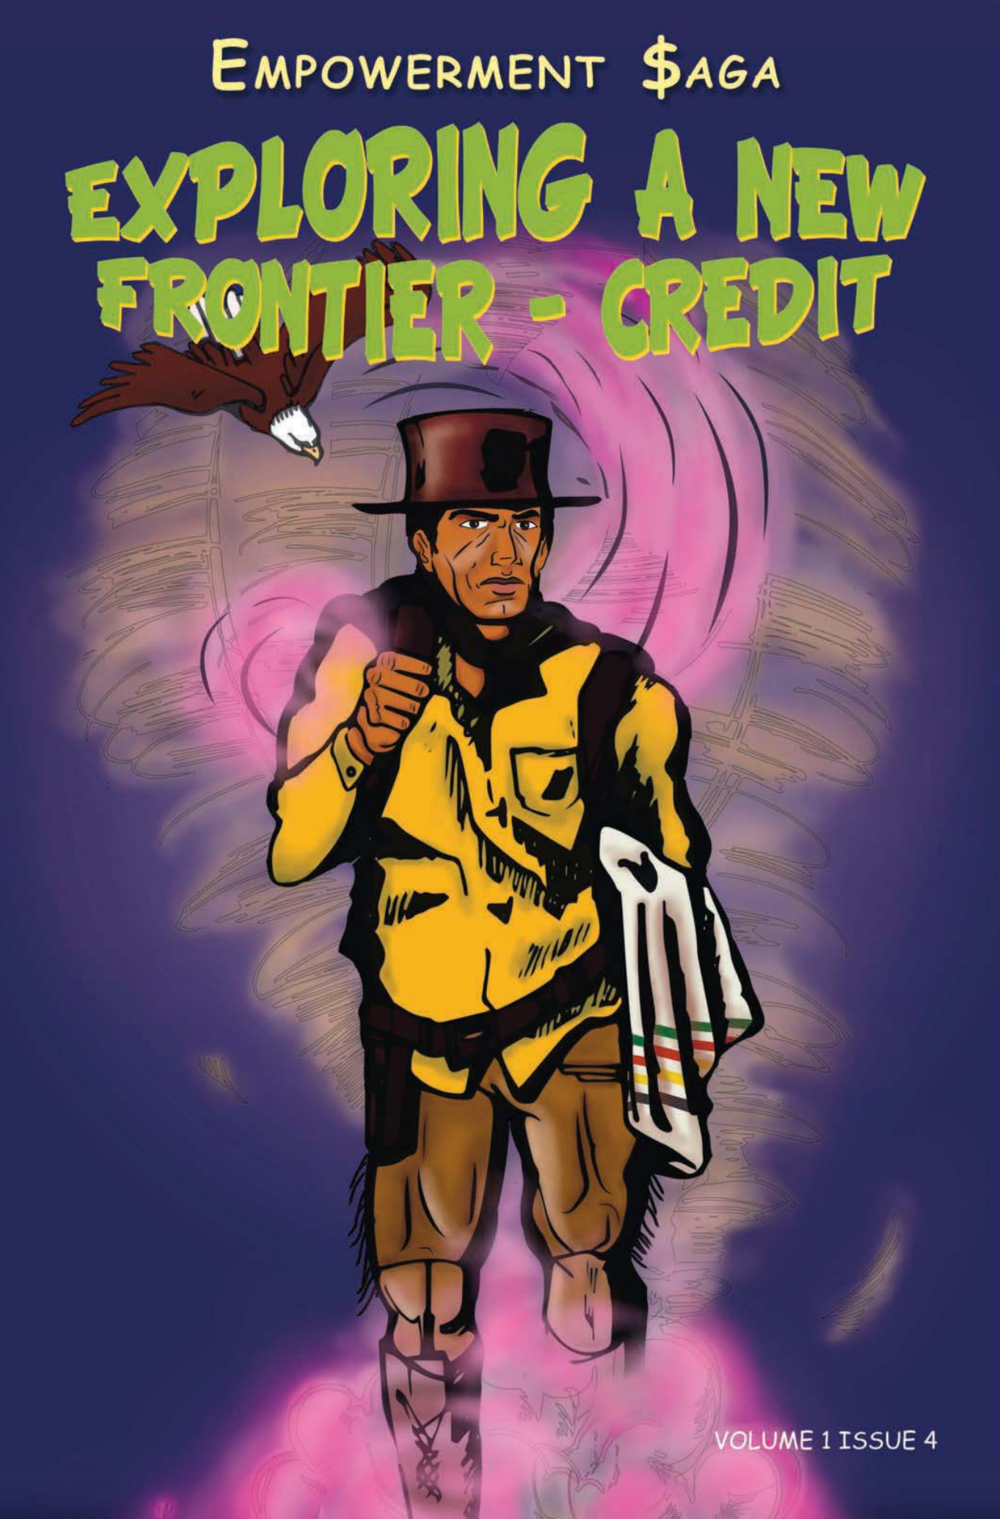 Book 4: Exploring a New Frontier - Credit